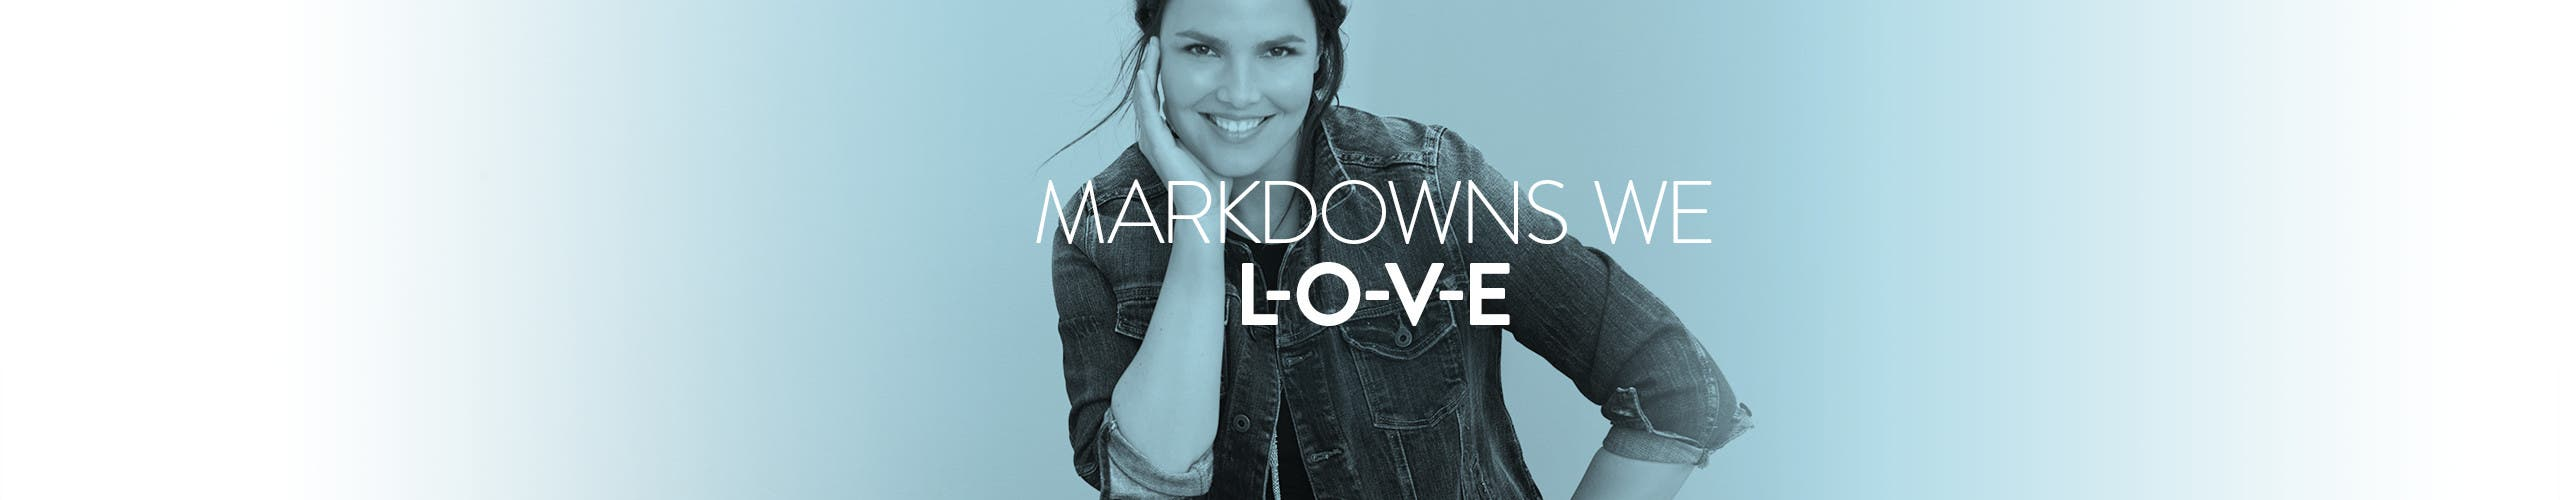 Plus-size women's clothing markdowns we l-o-v-e.